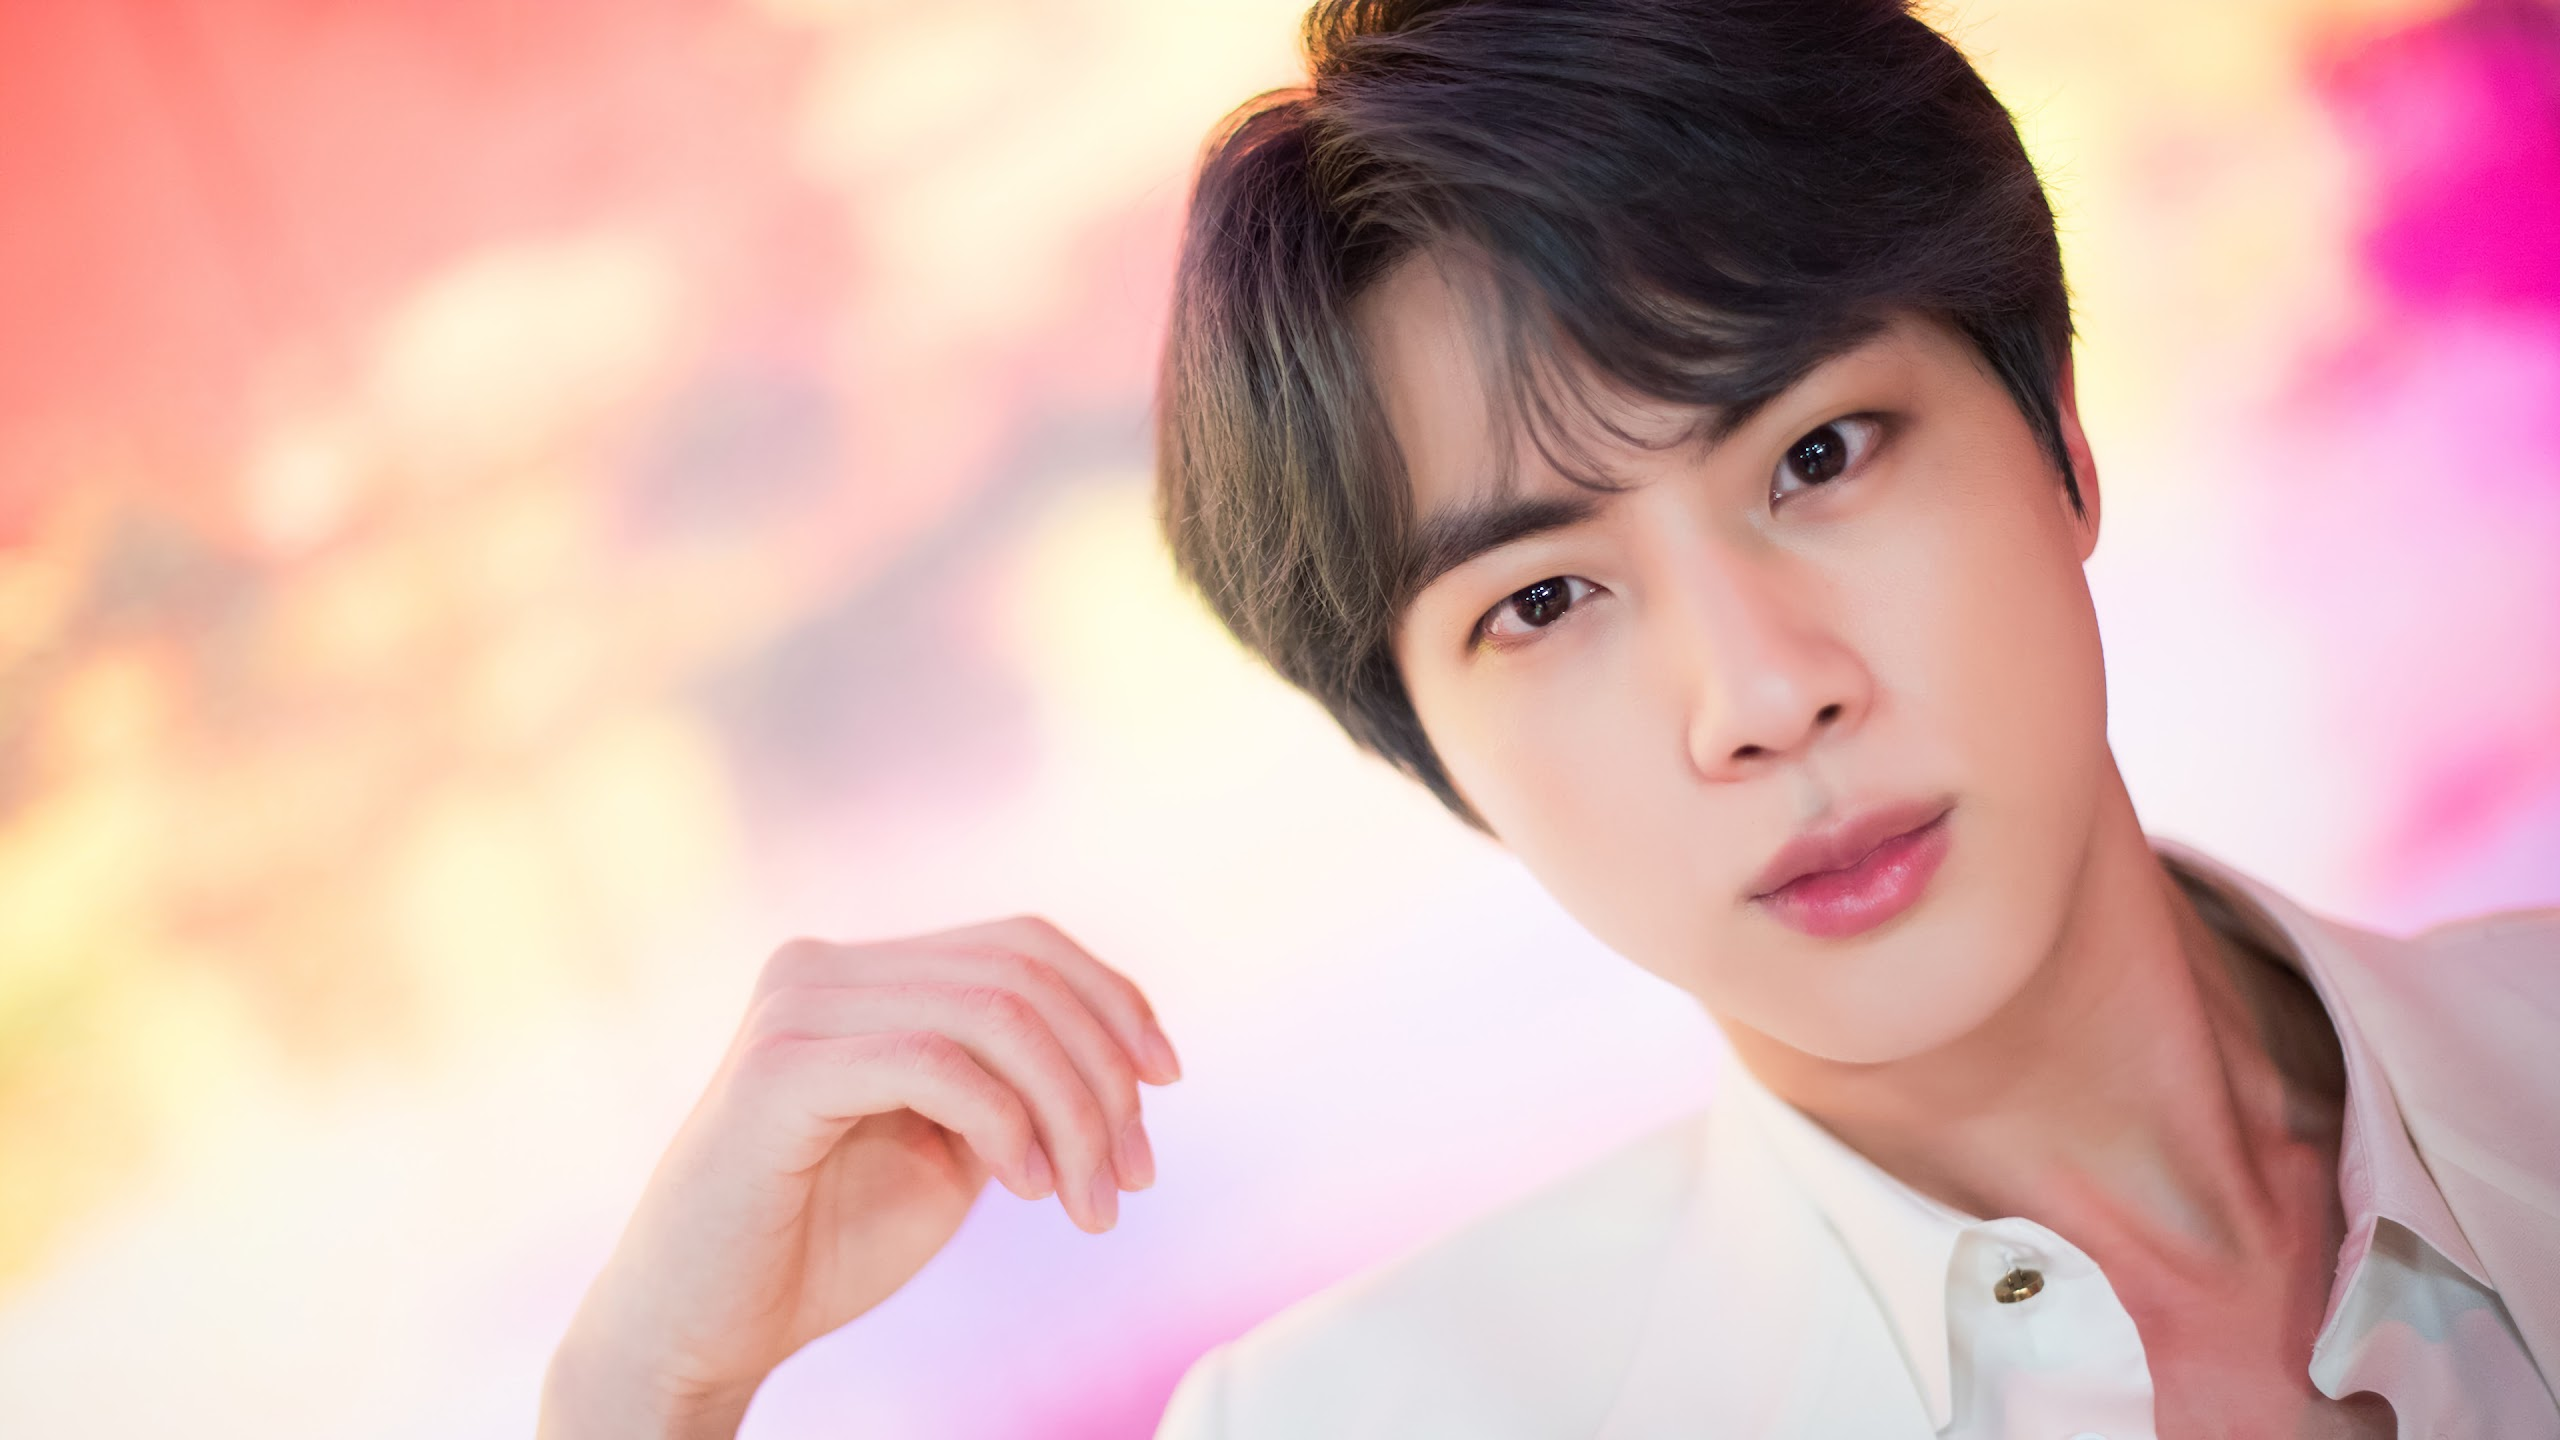 jin bts boy with luv uhdpaper.com 4K 57